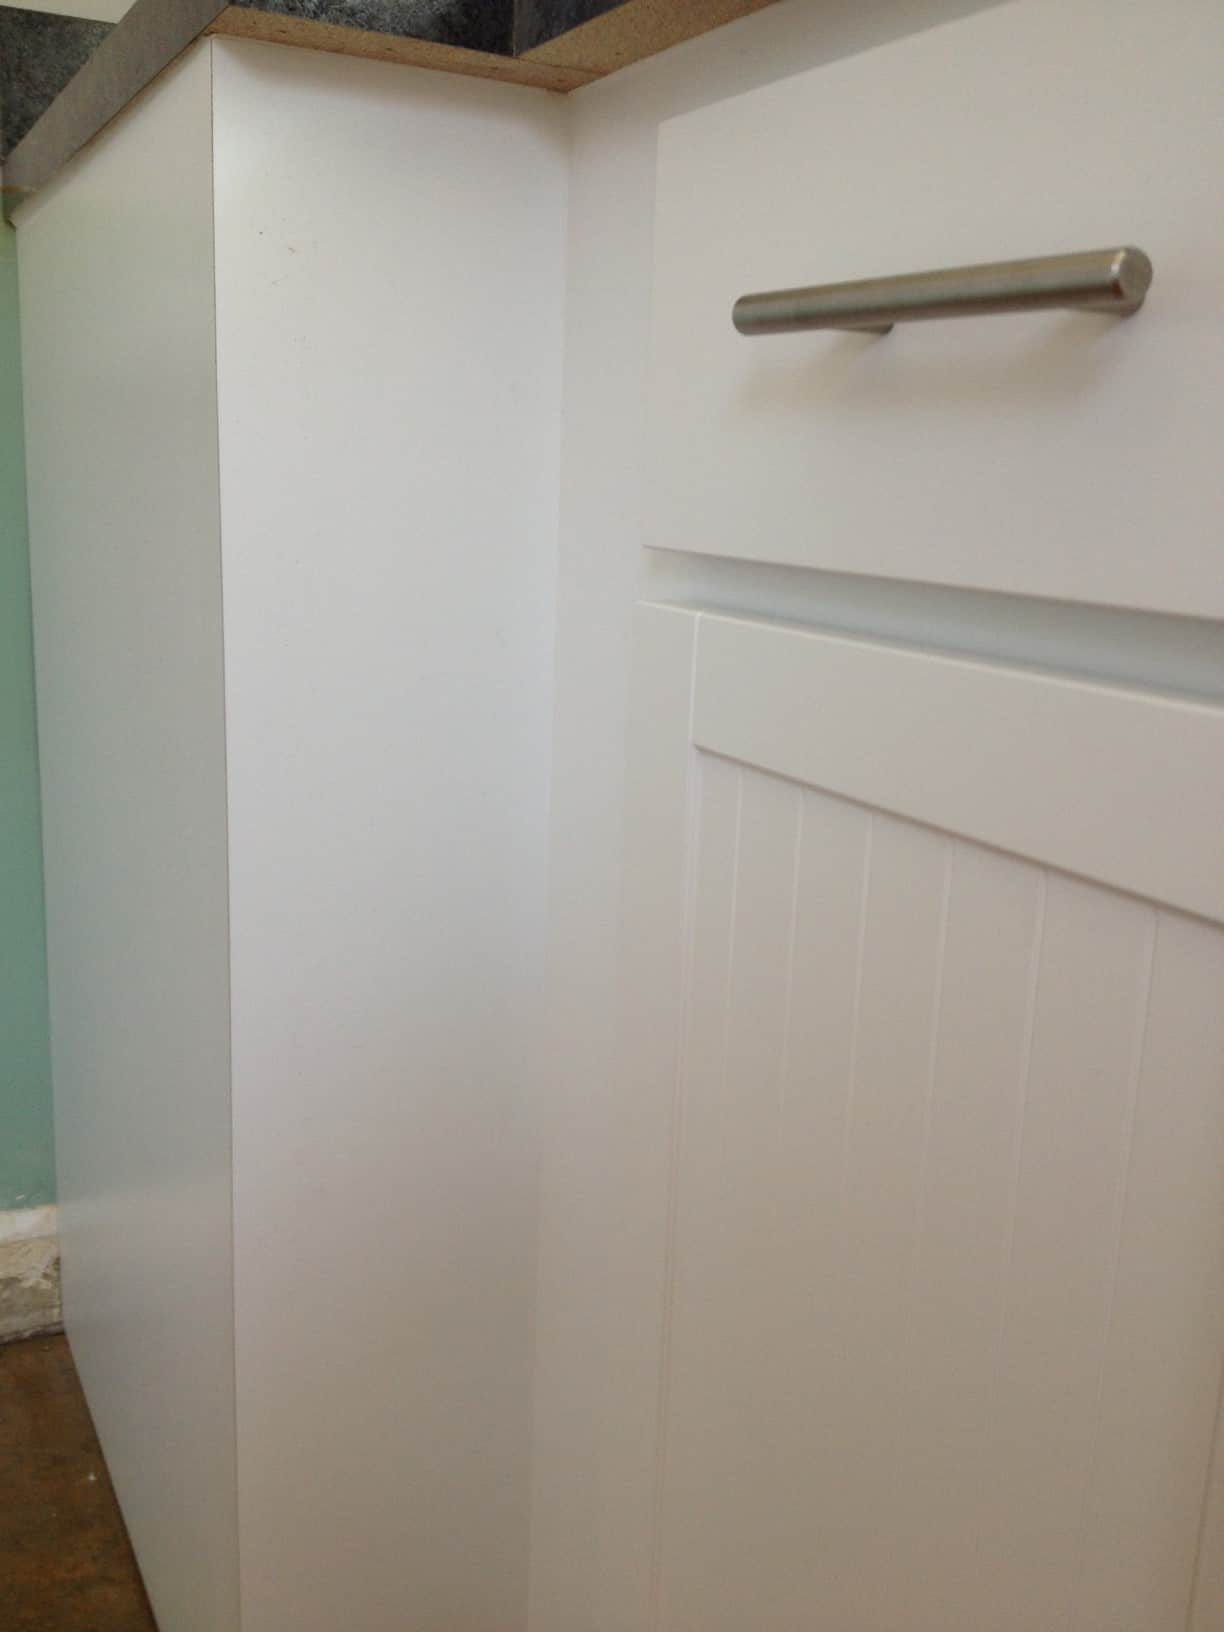 A close up of a white drawer of a kitchen cabinet, with a silver handle